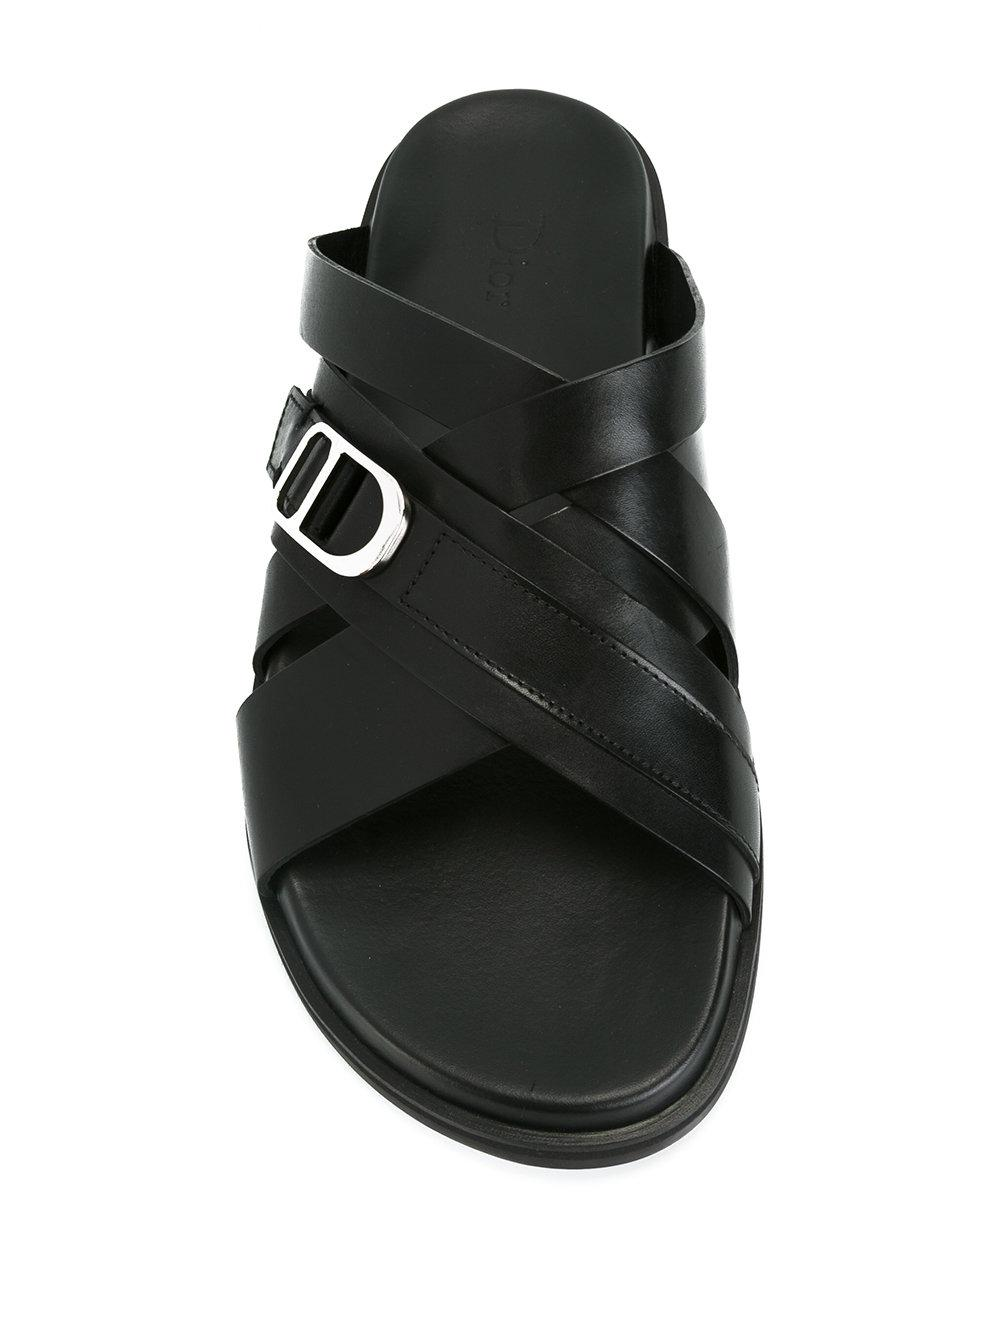 55bcf400978e4a Lyst - Dior Homme Cross Strap Sandals in Black for Men